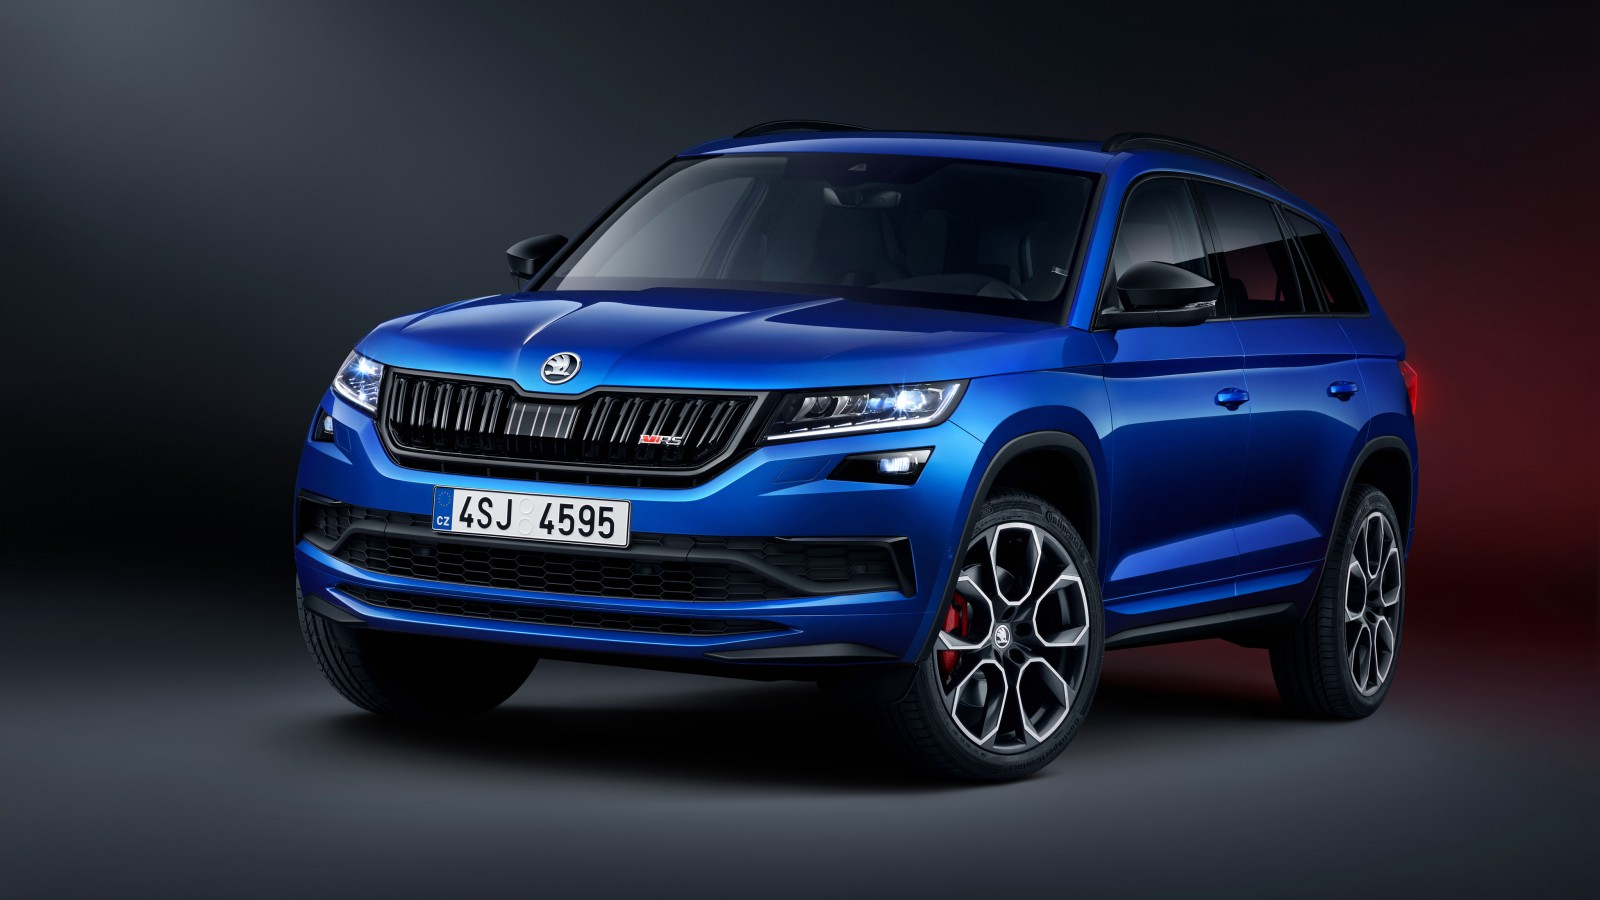 skoda kodiaq rs 2019 4k wallpaper hd car wallpapers id 11333. Black Bedroom Furniture Sets. Home Design Ideas